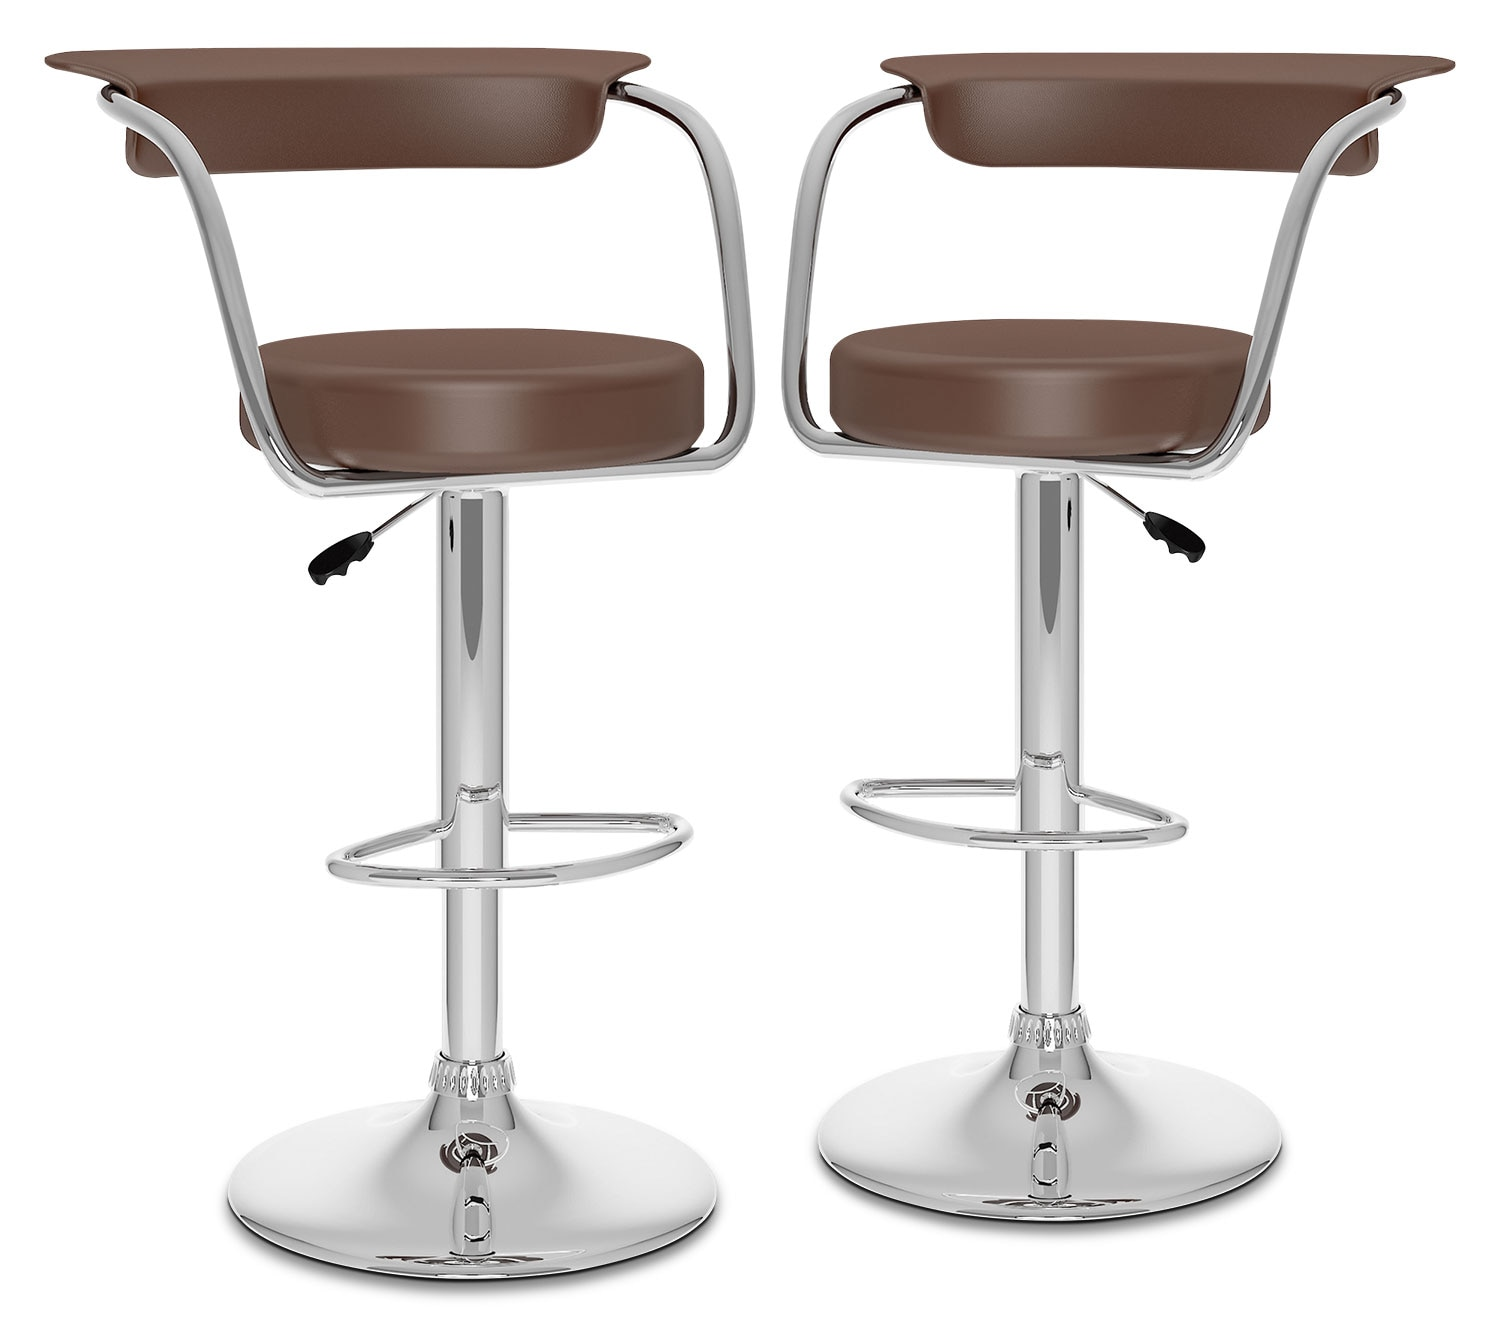 CorLiving Open-Back Adjustable Bar Stool, Set of 2 – Brown